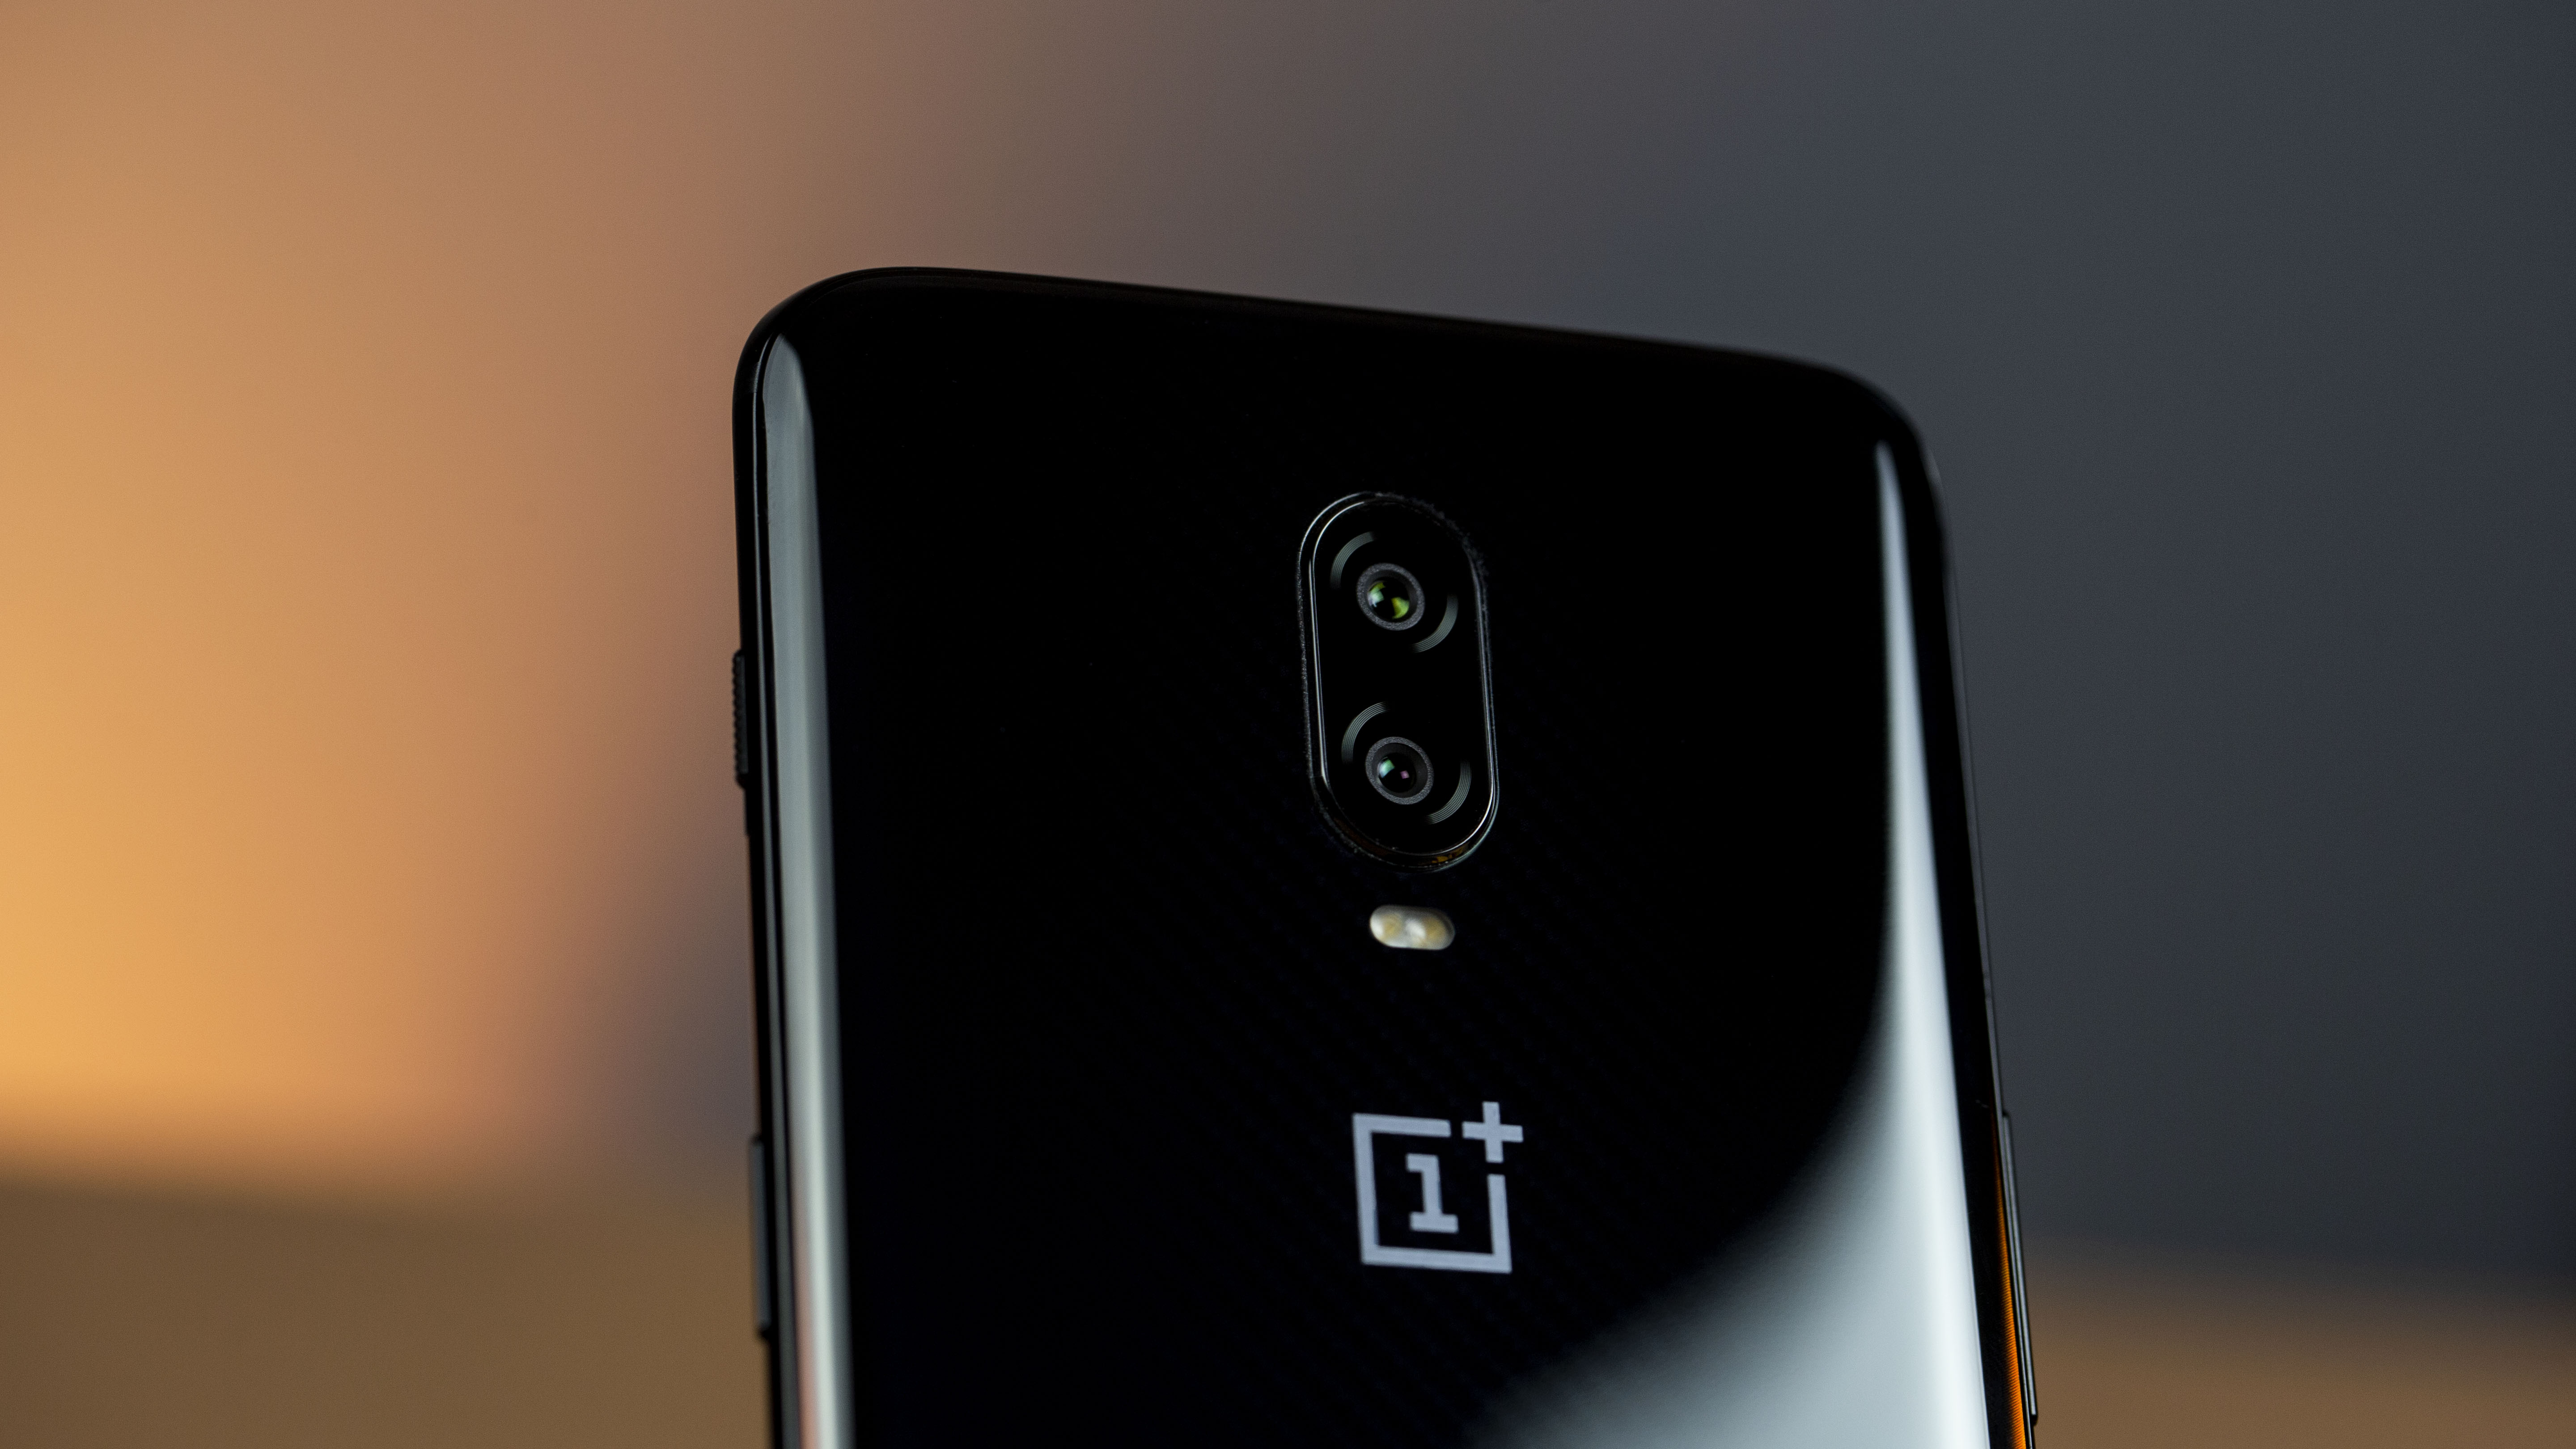 New information surfaces about the launch of the OnePlus 7